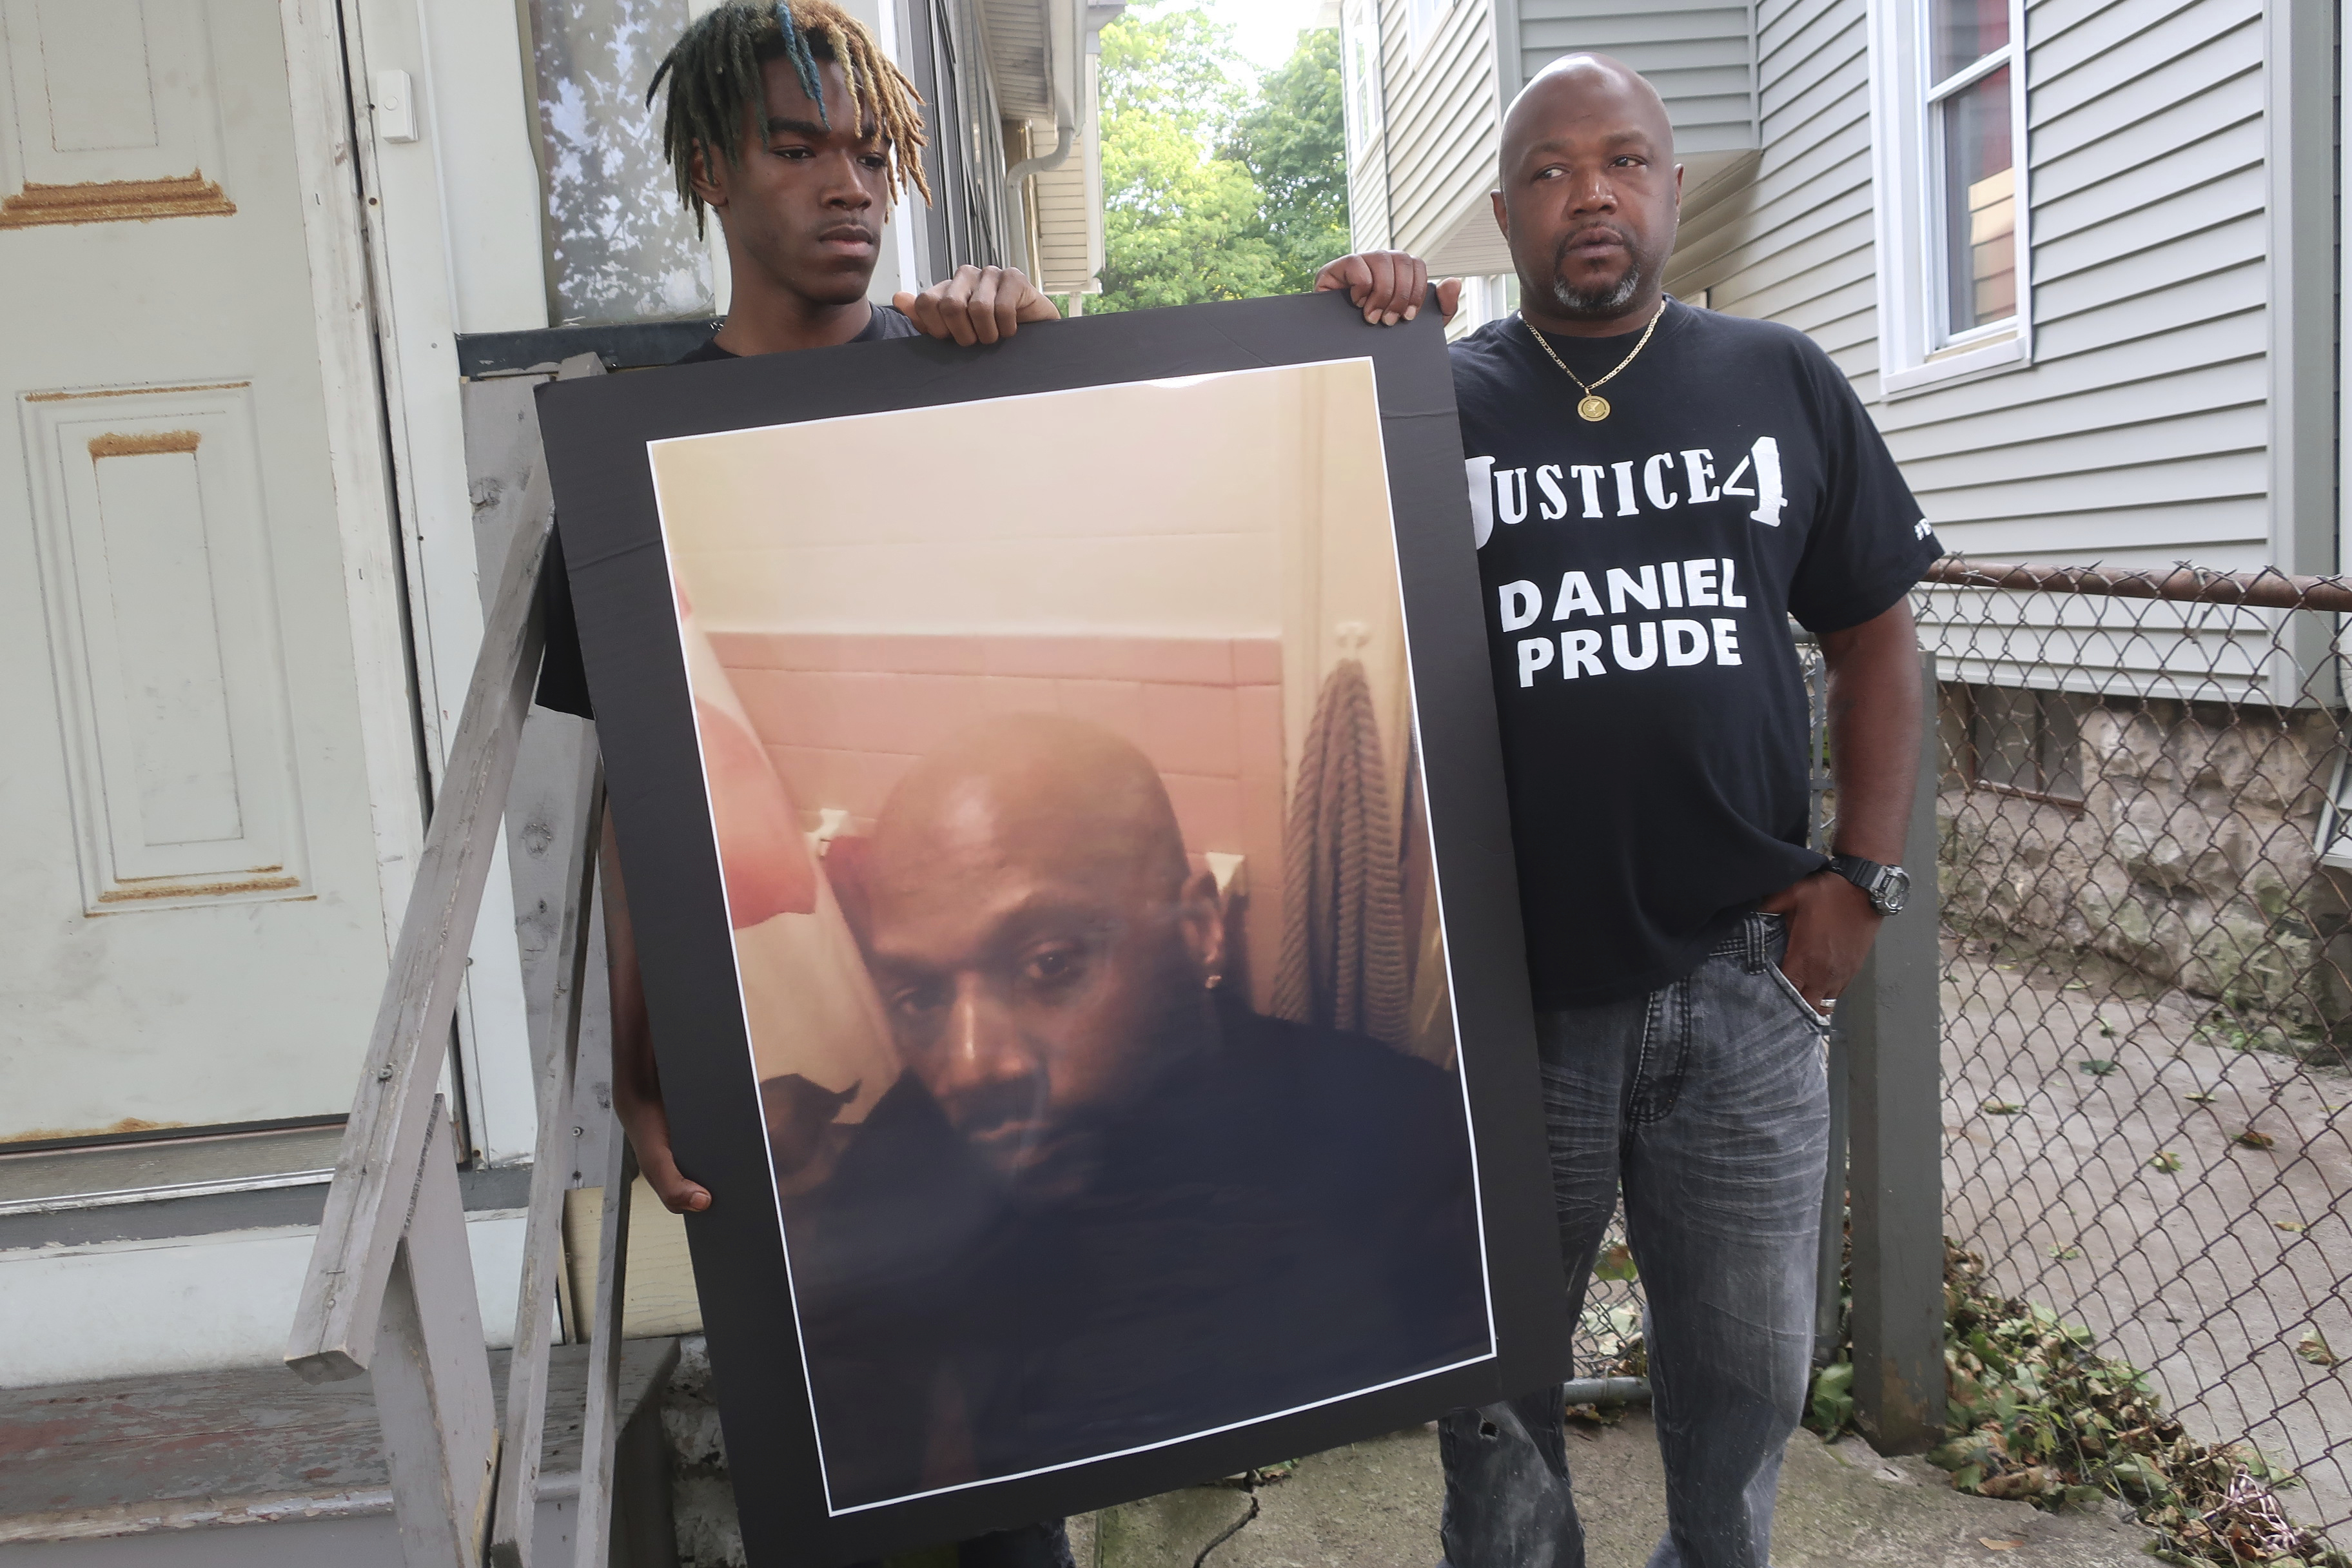 No charges against Rochester, N.Y., officers involved in Daniel Prude's death